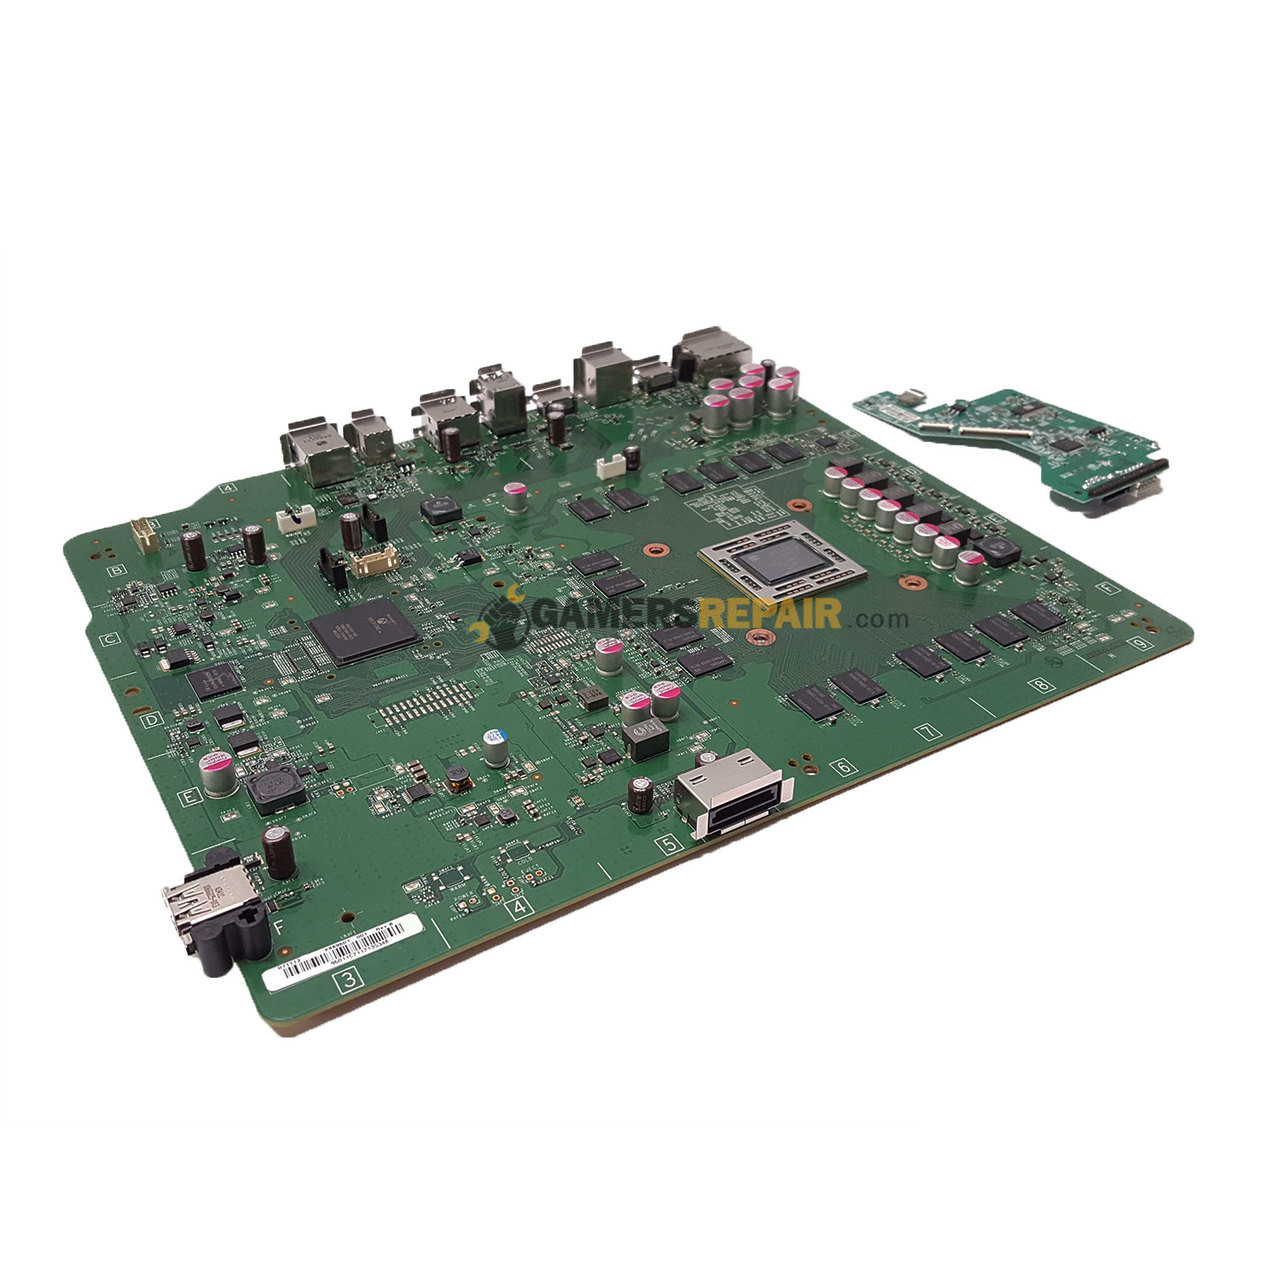 Oem Motherboard 120413 Drive Pcb For Xbox One